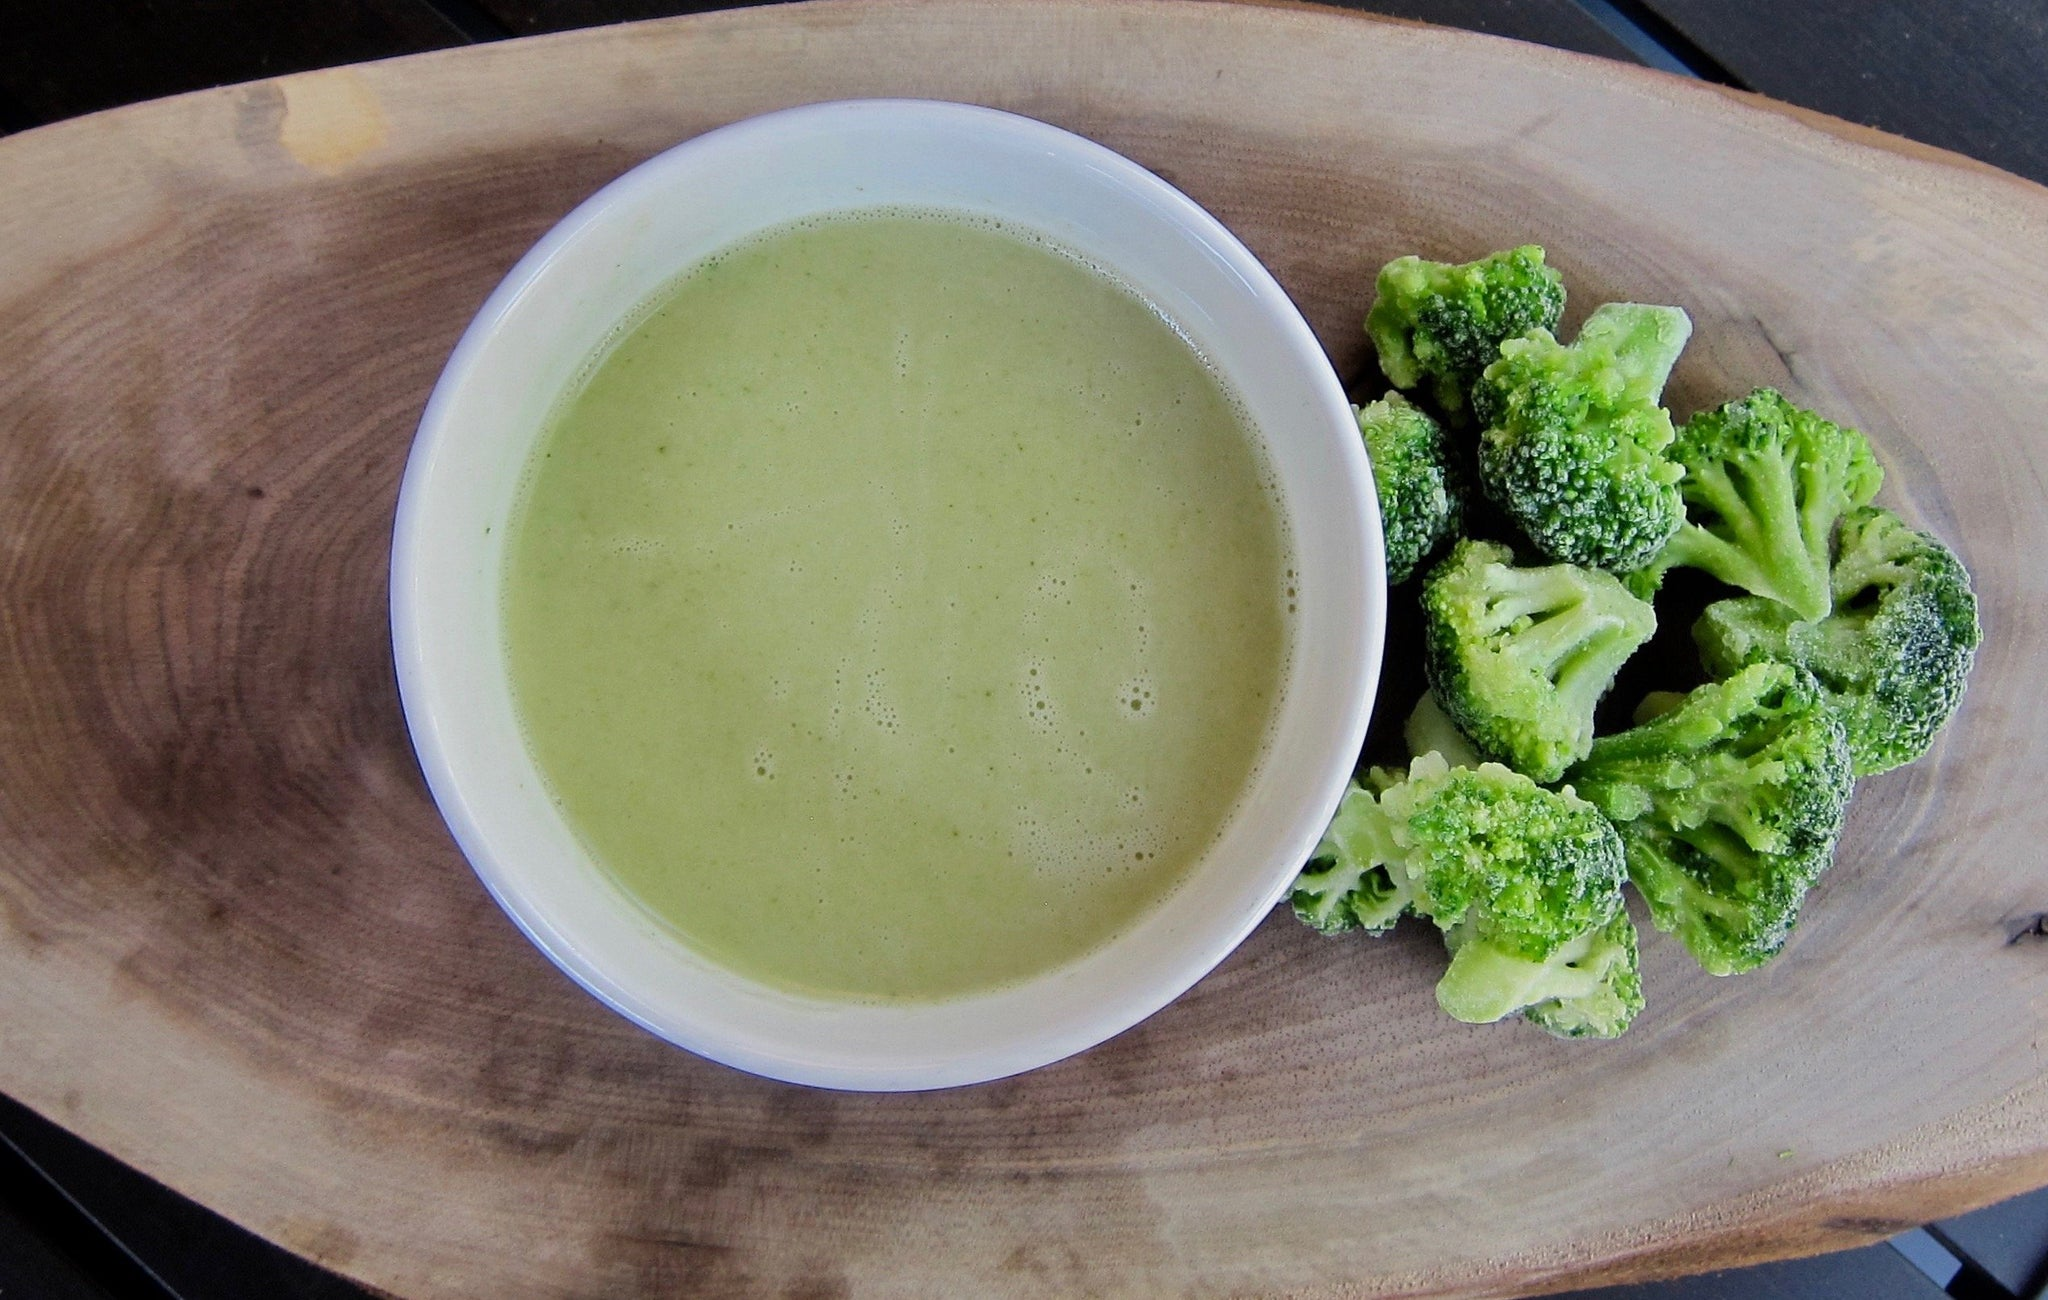 Broccoli Soup with Coconut Milk (Serves 2-3 adults)